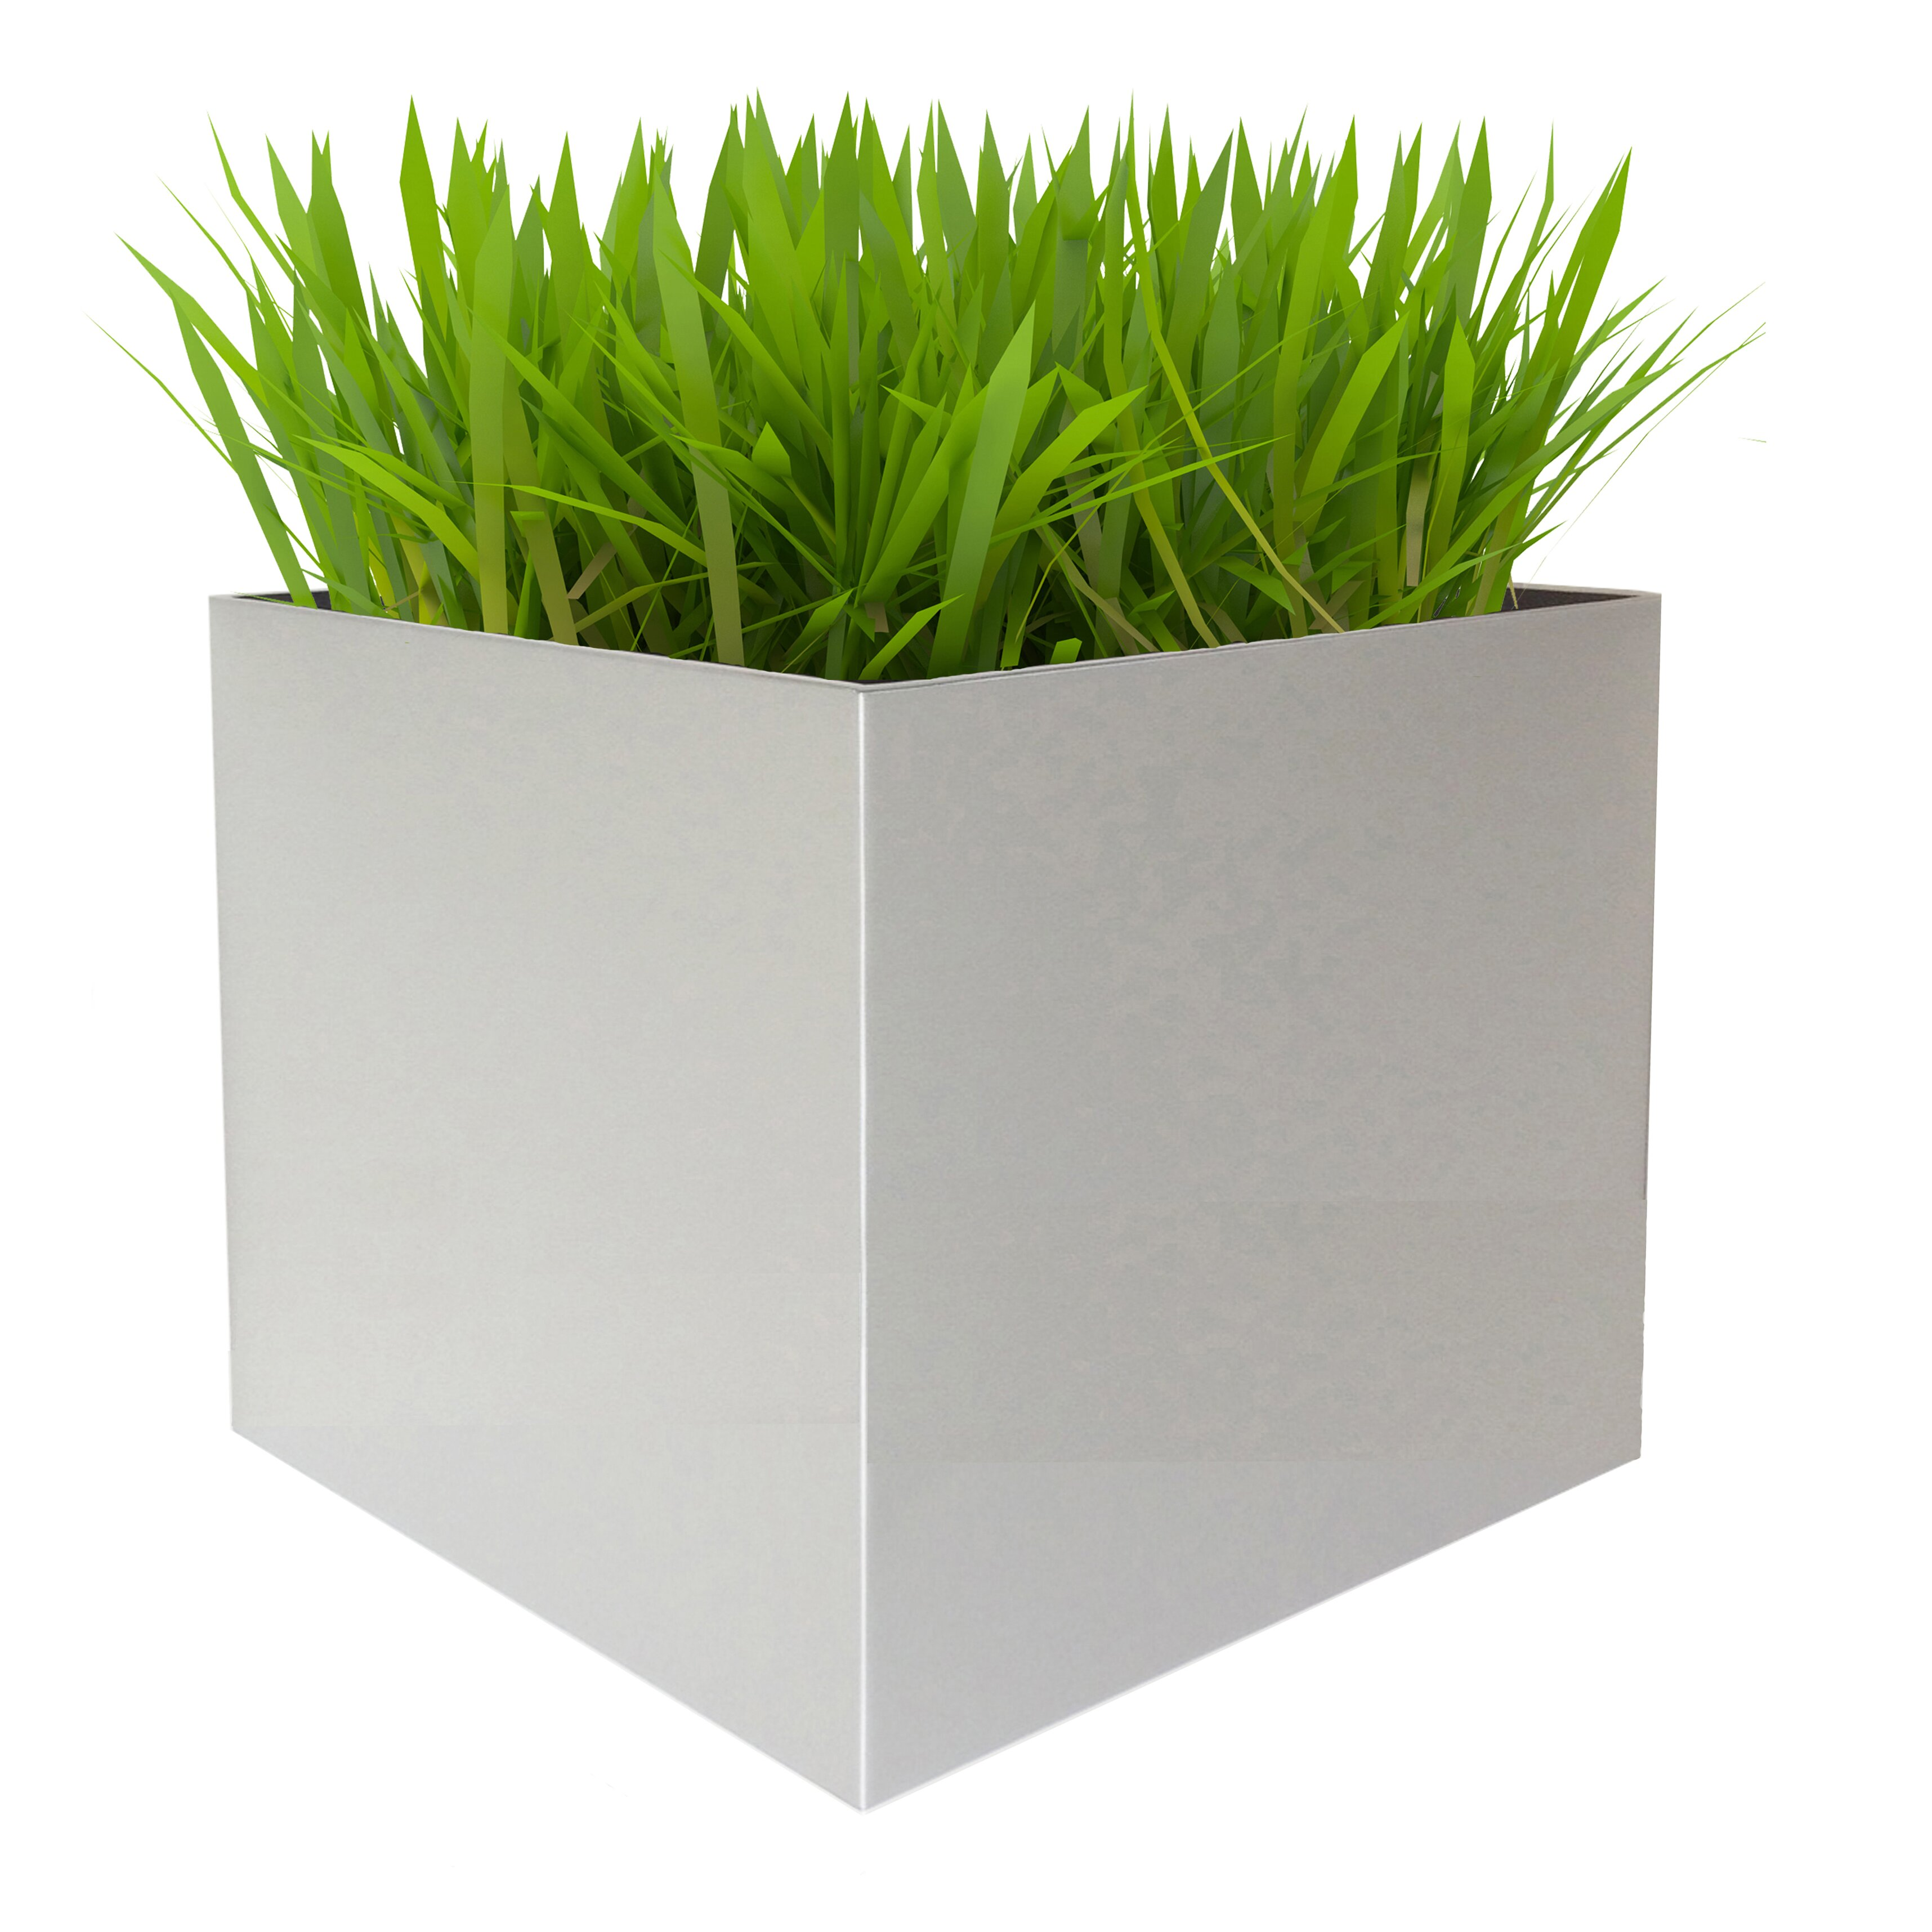 Nmn designs square planter box reviews wayfair for Wayfair garden box